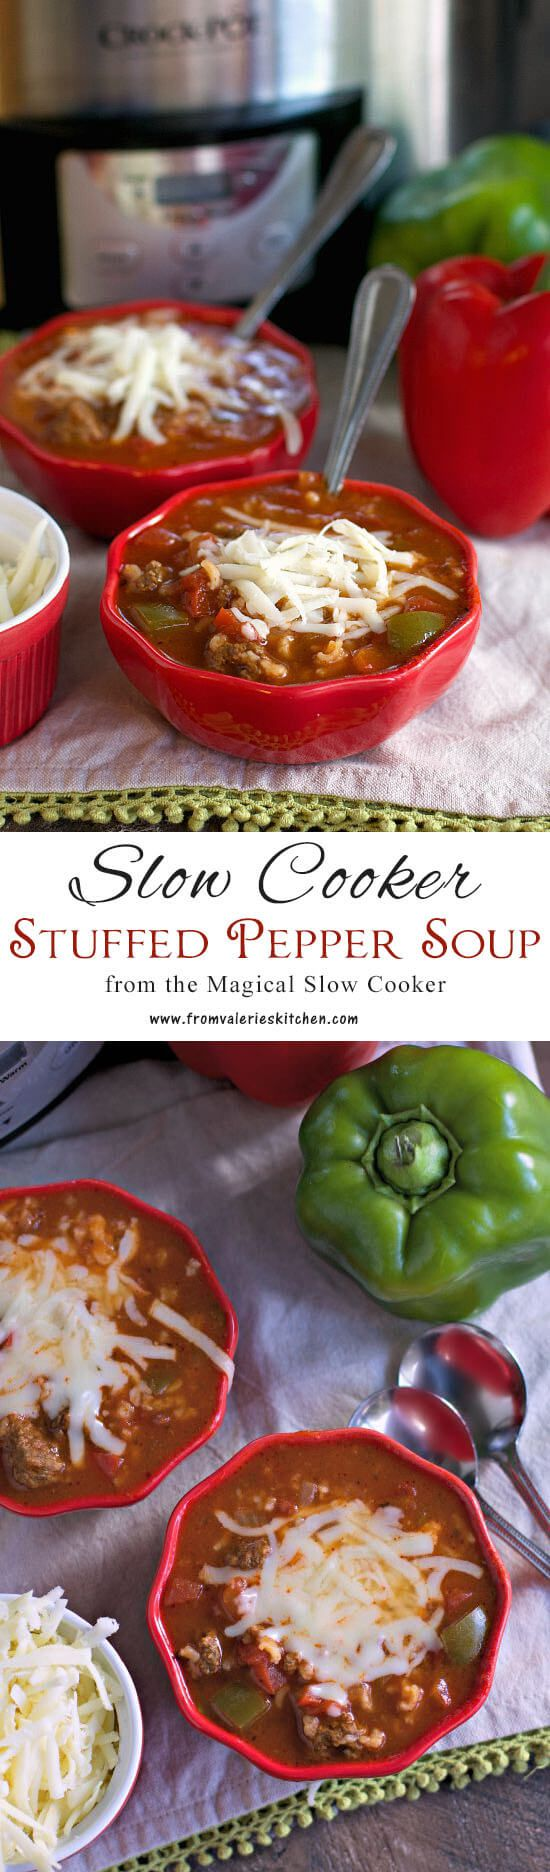 All the classic flavors of stuffed peppers cooked together in a hearty, wholesome slow cooker soup!